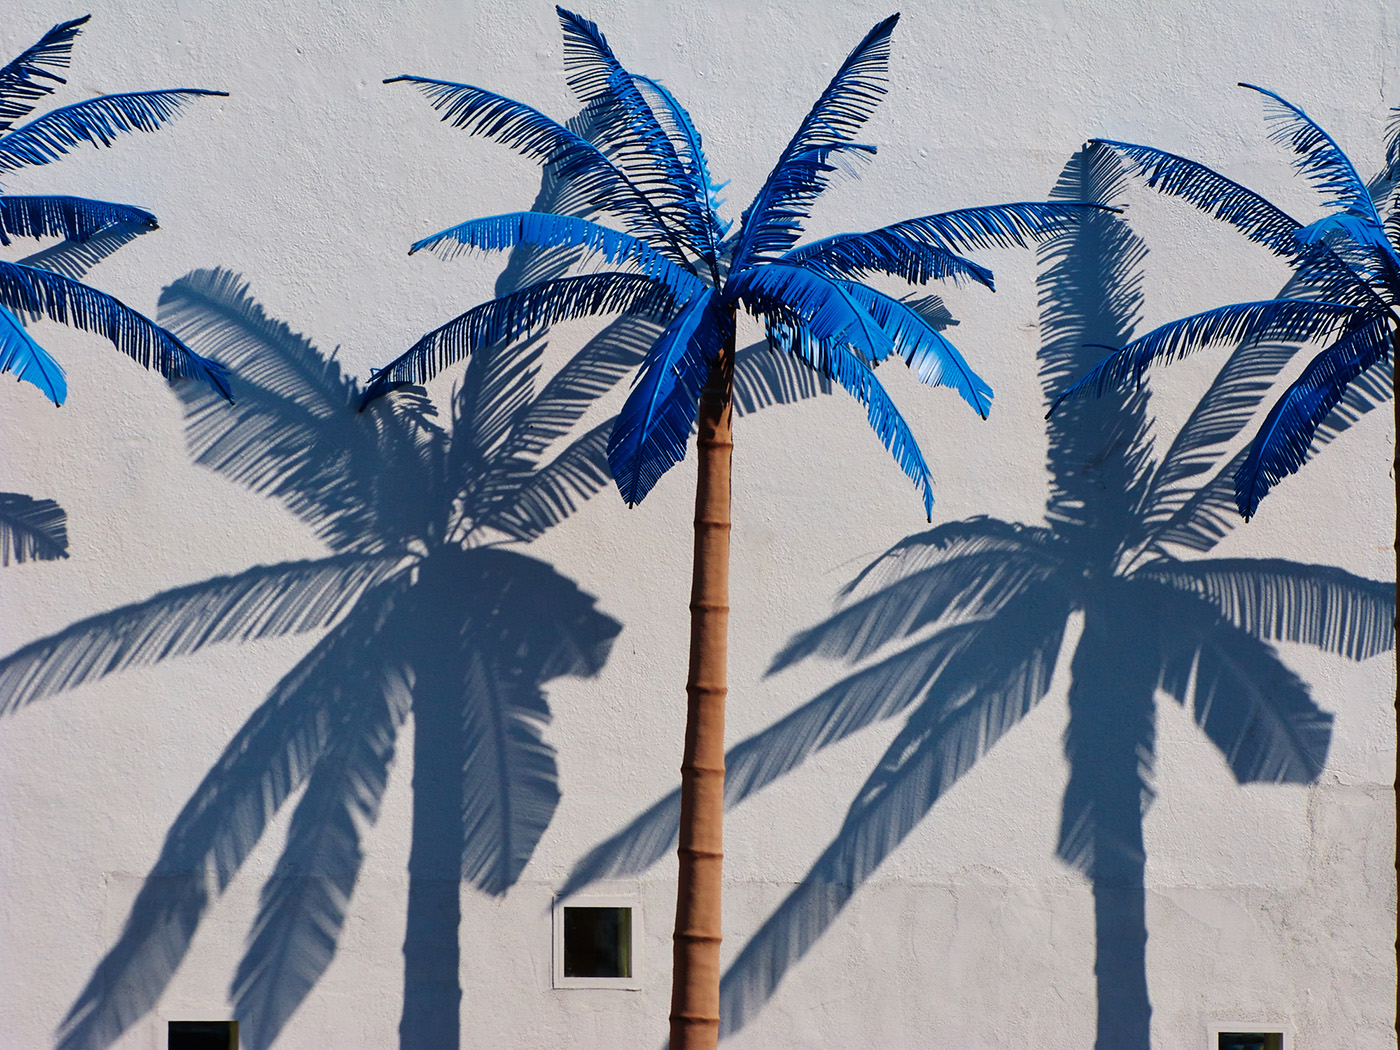 Artificial Palm Trees, Wildwood, New Jersey